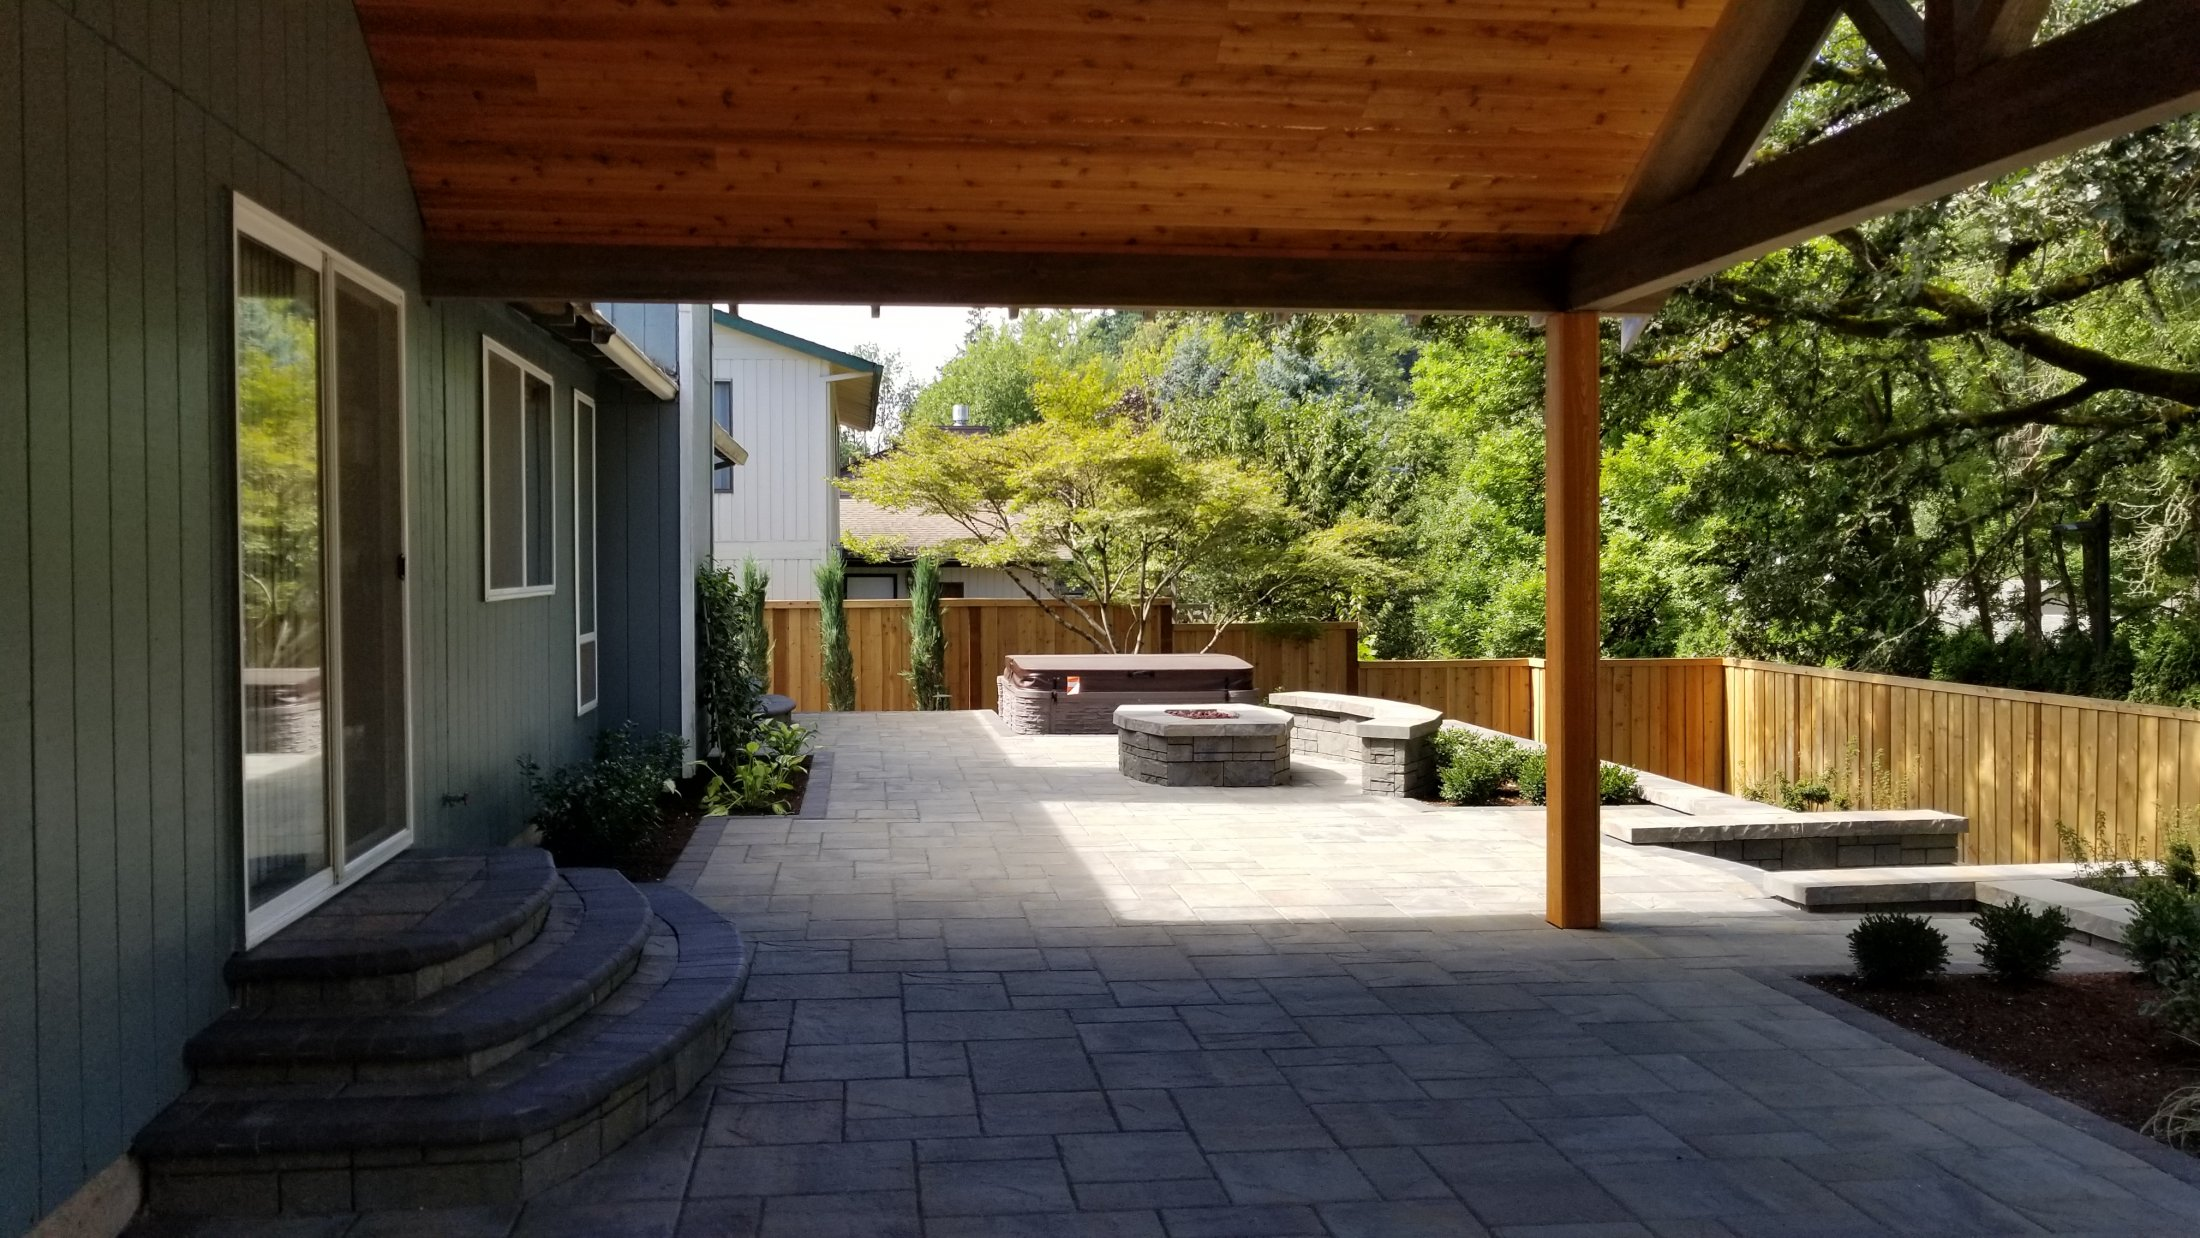 Paver Patio, New Covered Structure